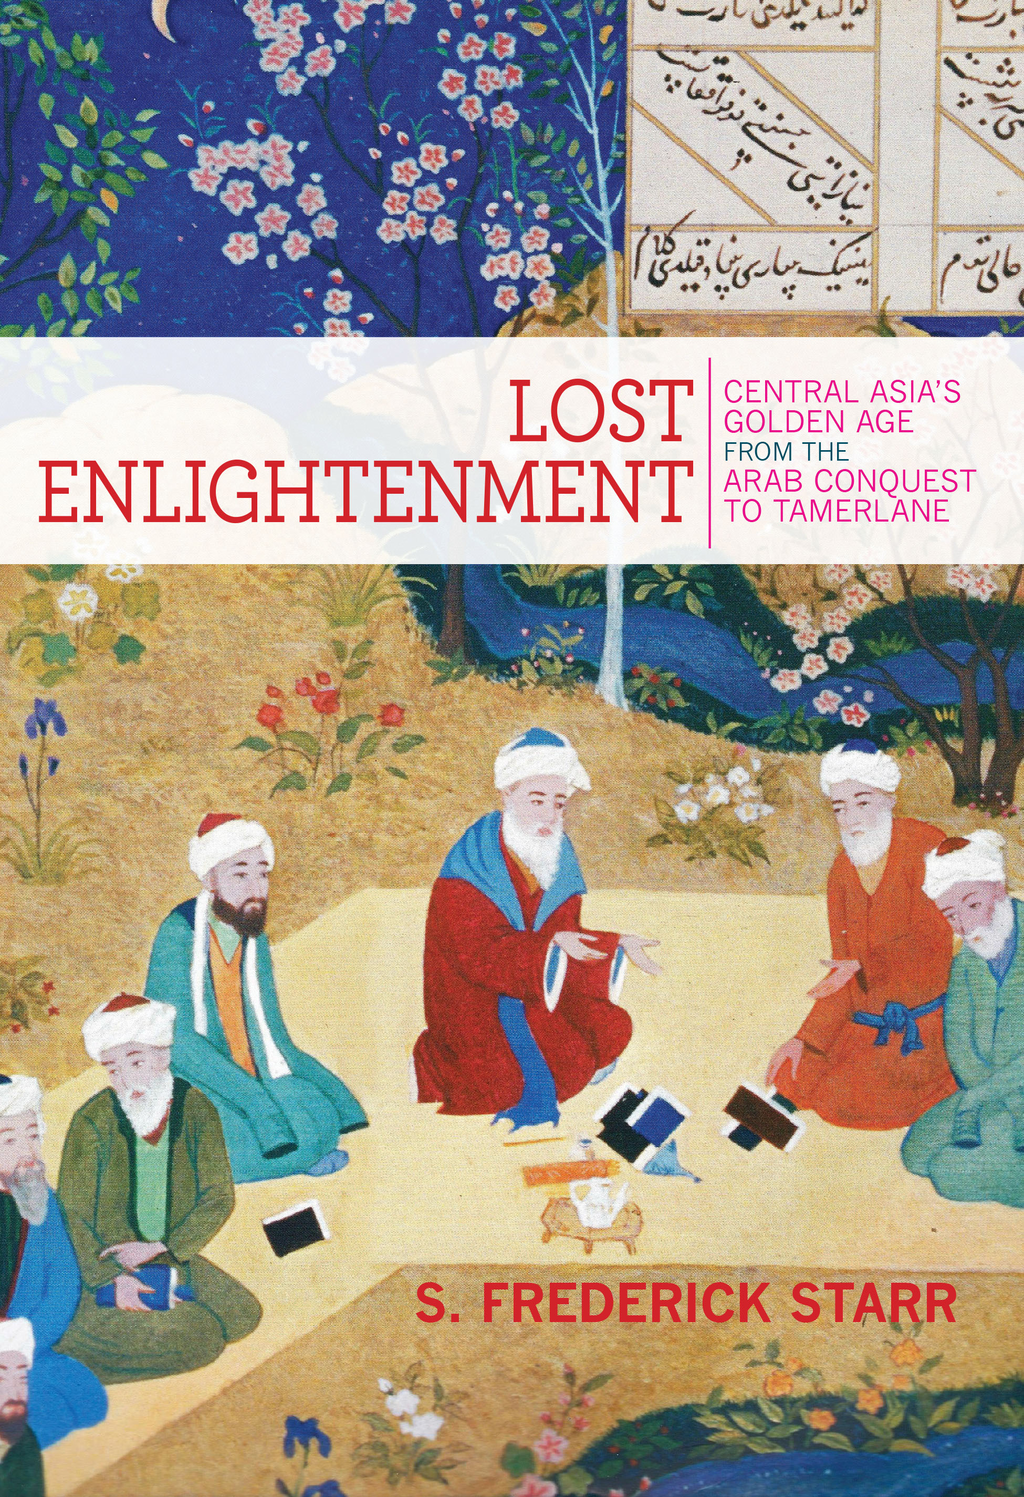 Lost Enlightenment Central Asia's Golden Age from the Arab Conquest to Tamerlane